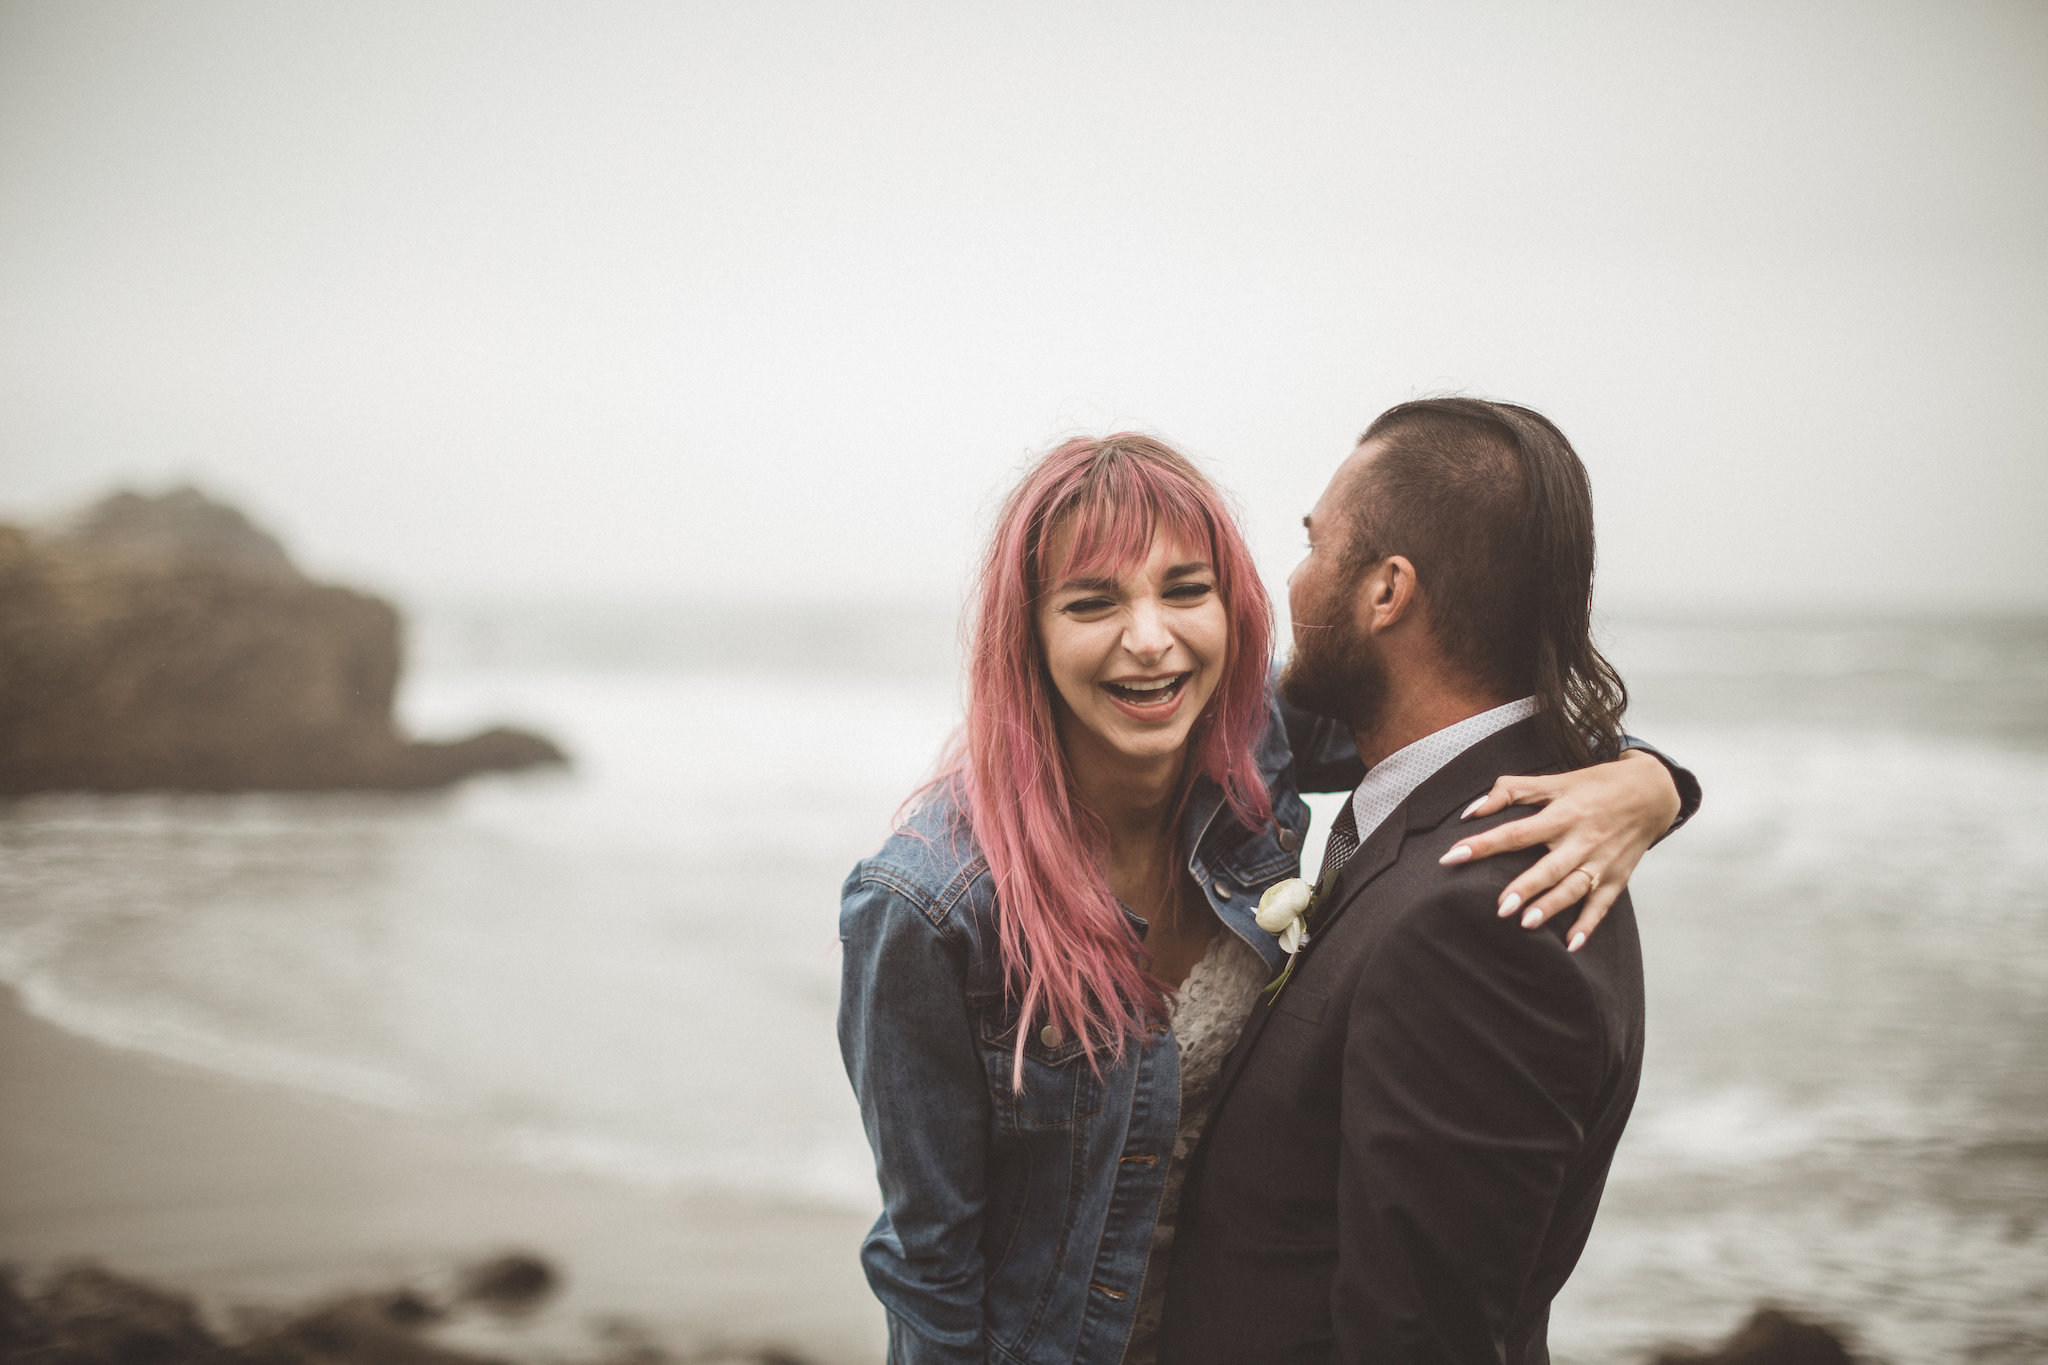 kris-and-andreas-san-francisco-elopement-adventure71.jpg